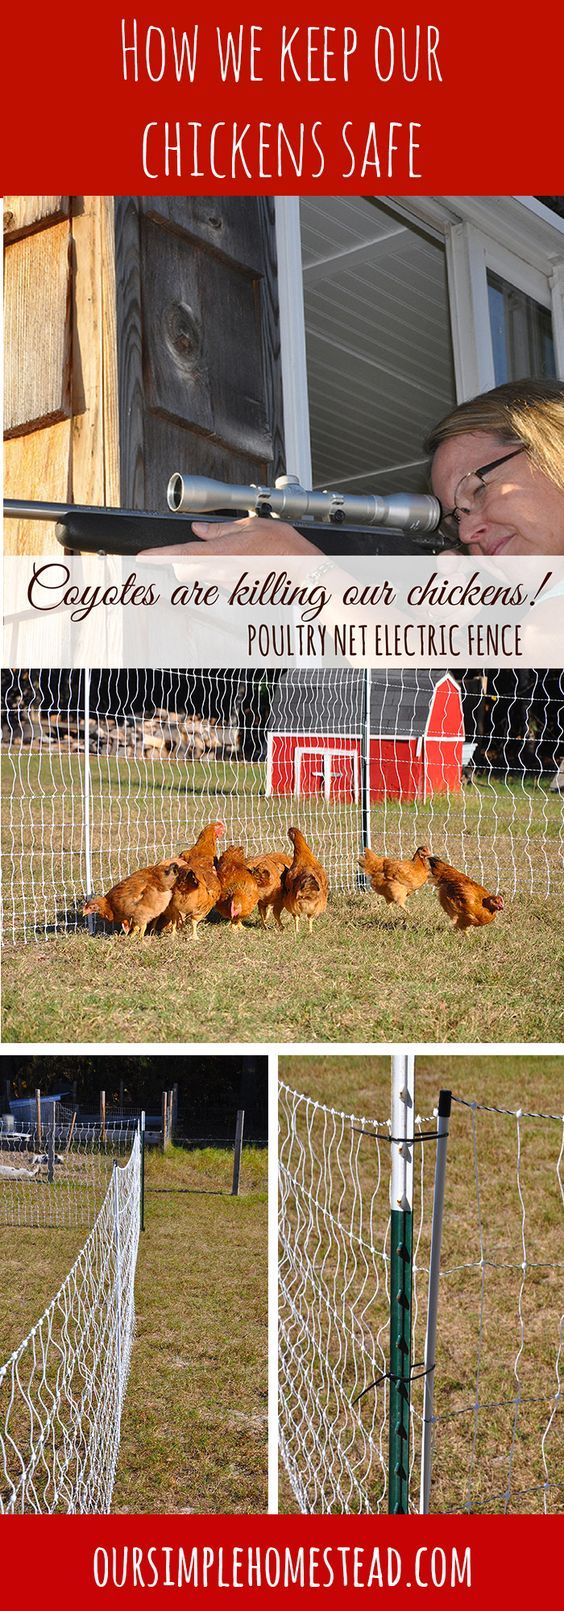 Electric Chicken Fence - Me and my 22 against the sneaky underhanded skill and agility of a pack of coyotes that have been stocking and feasting on our best backyard chickens. We needed to find an electric chicken fence to protect our valuable hens.